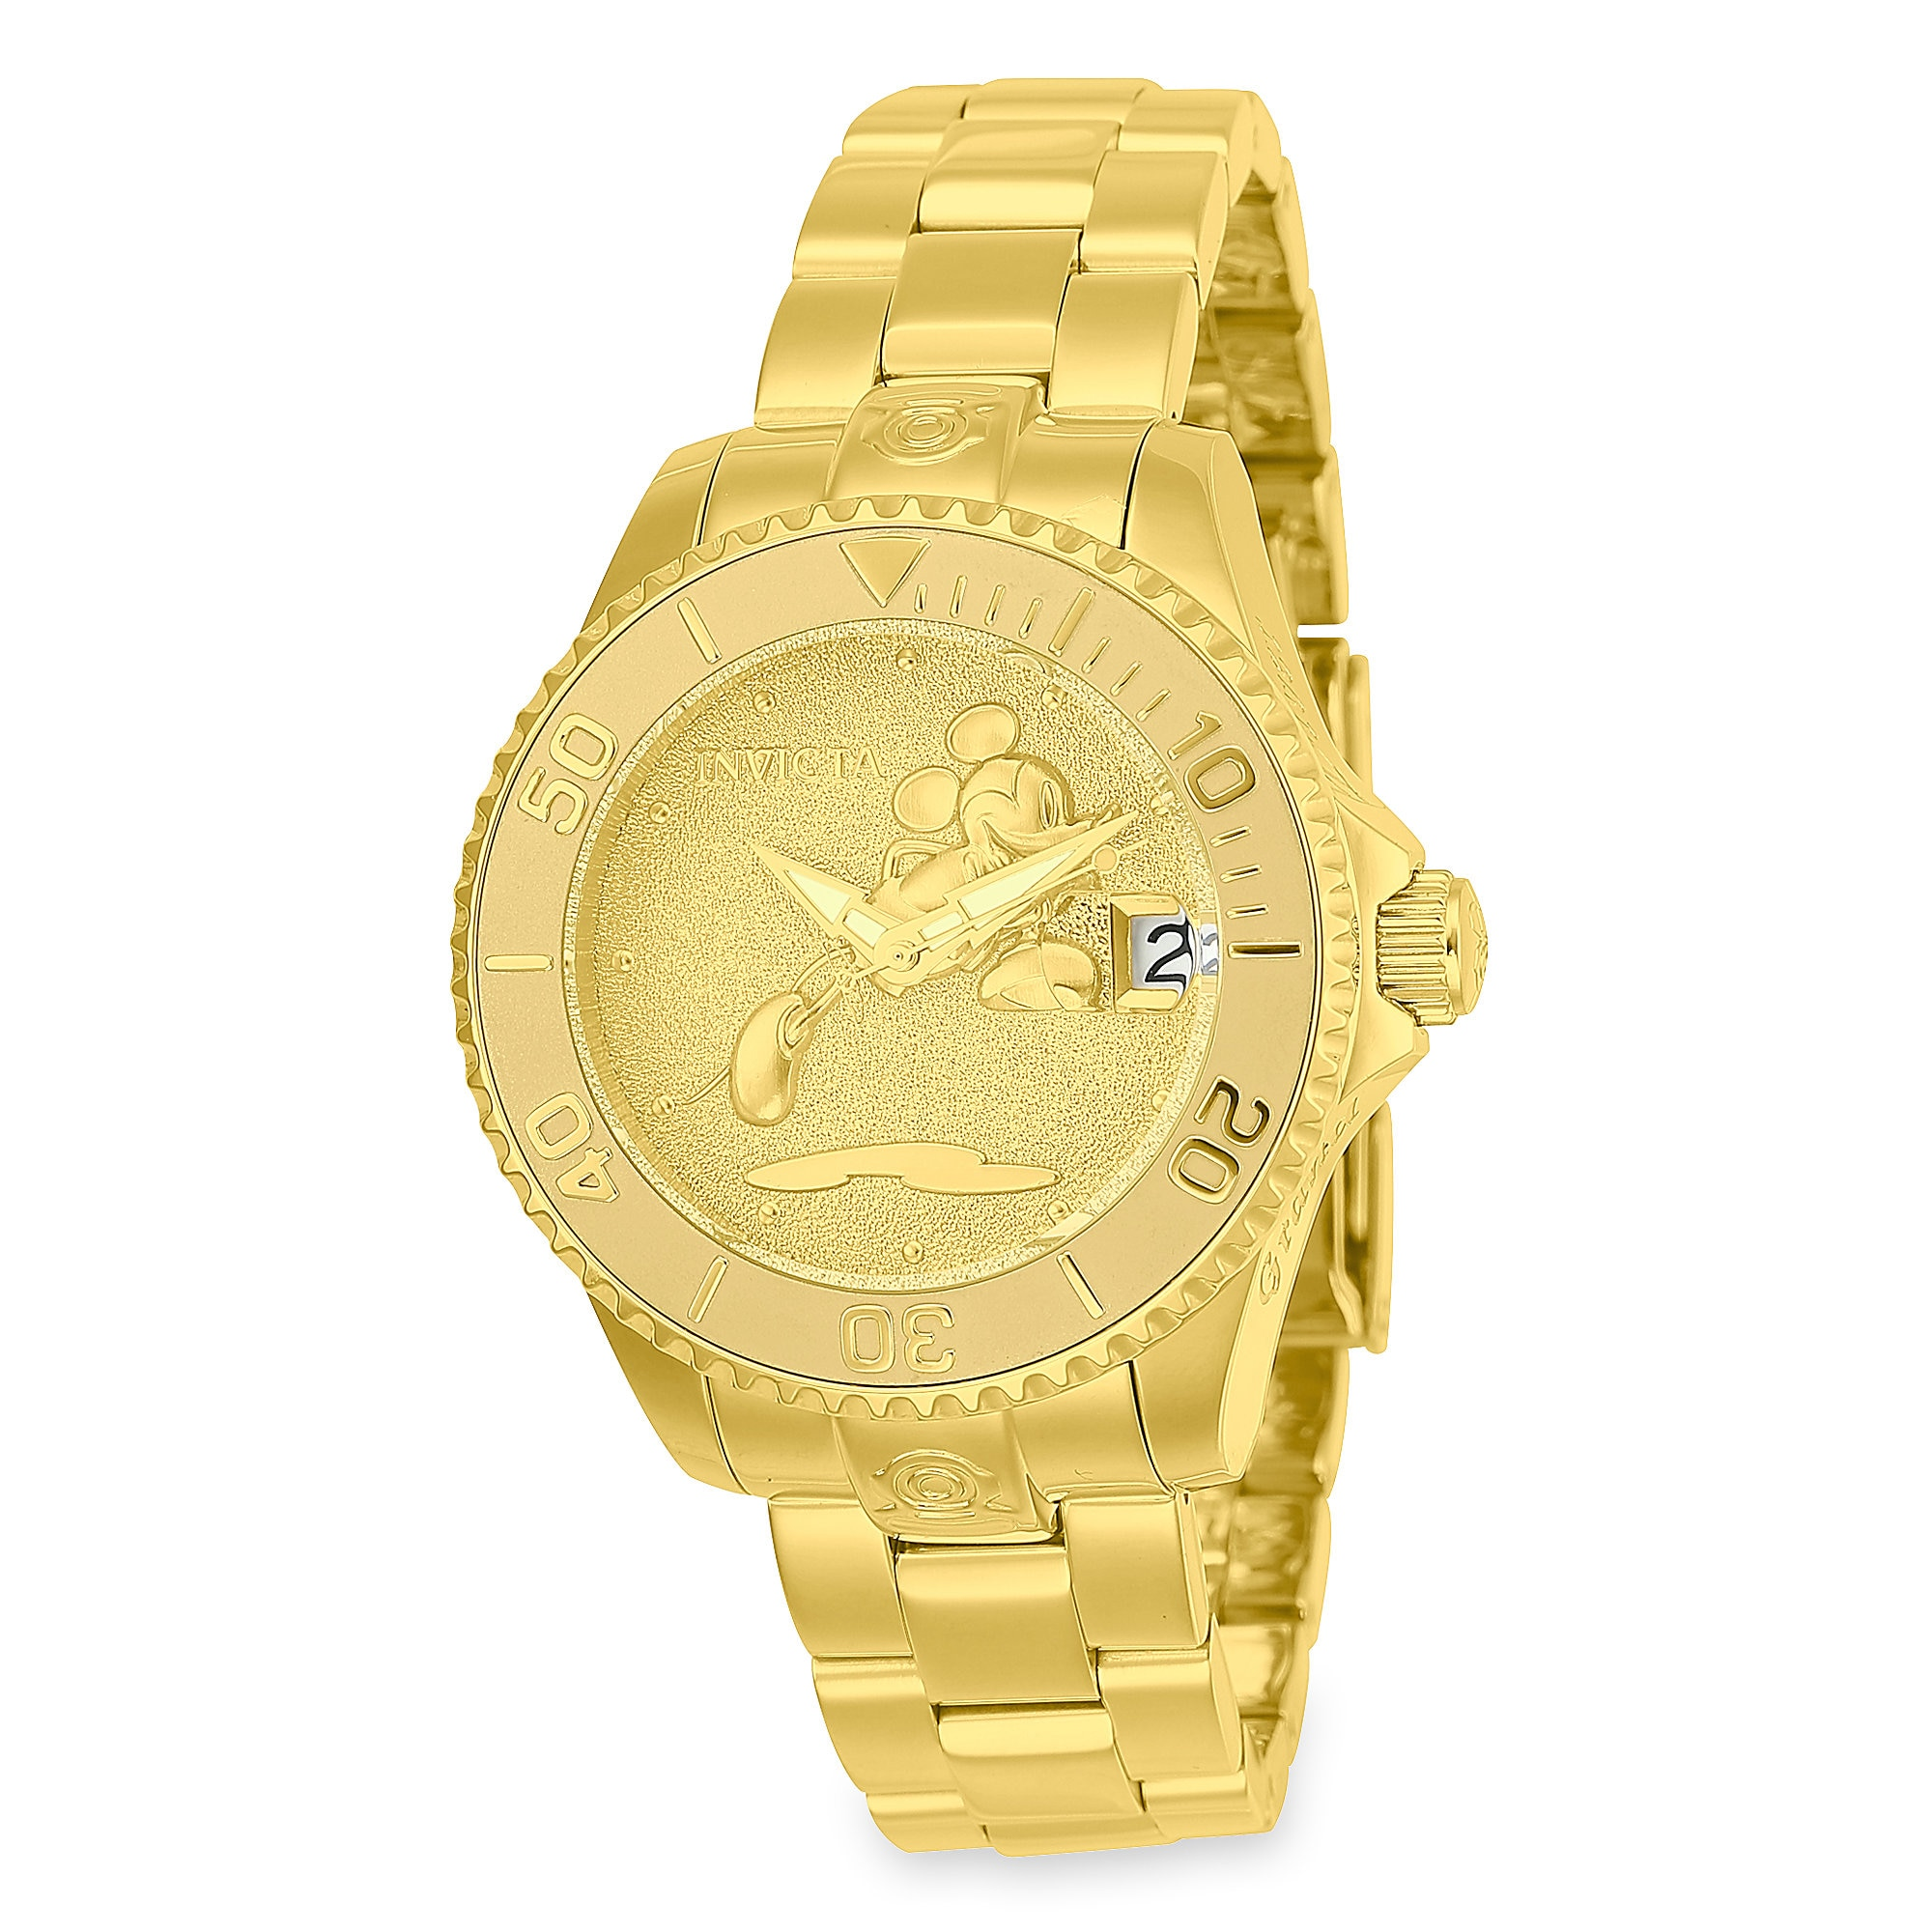 Mickey Mouse Golden Watch for Women by INVICTA - Limited Edition